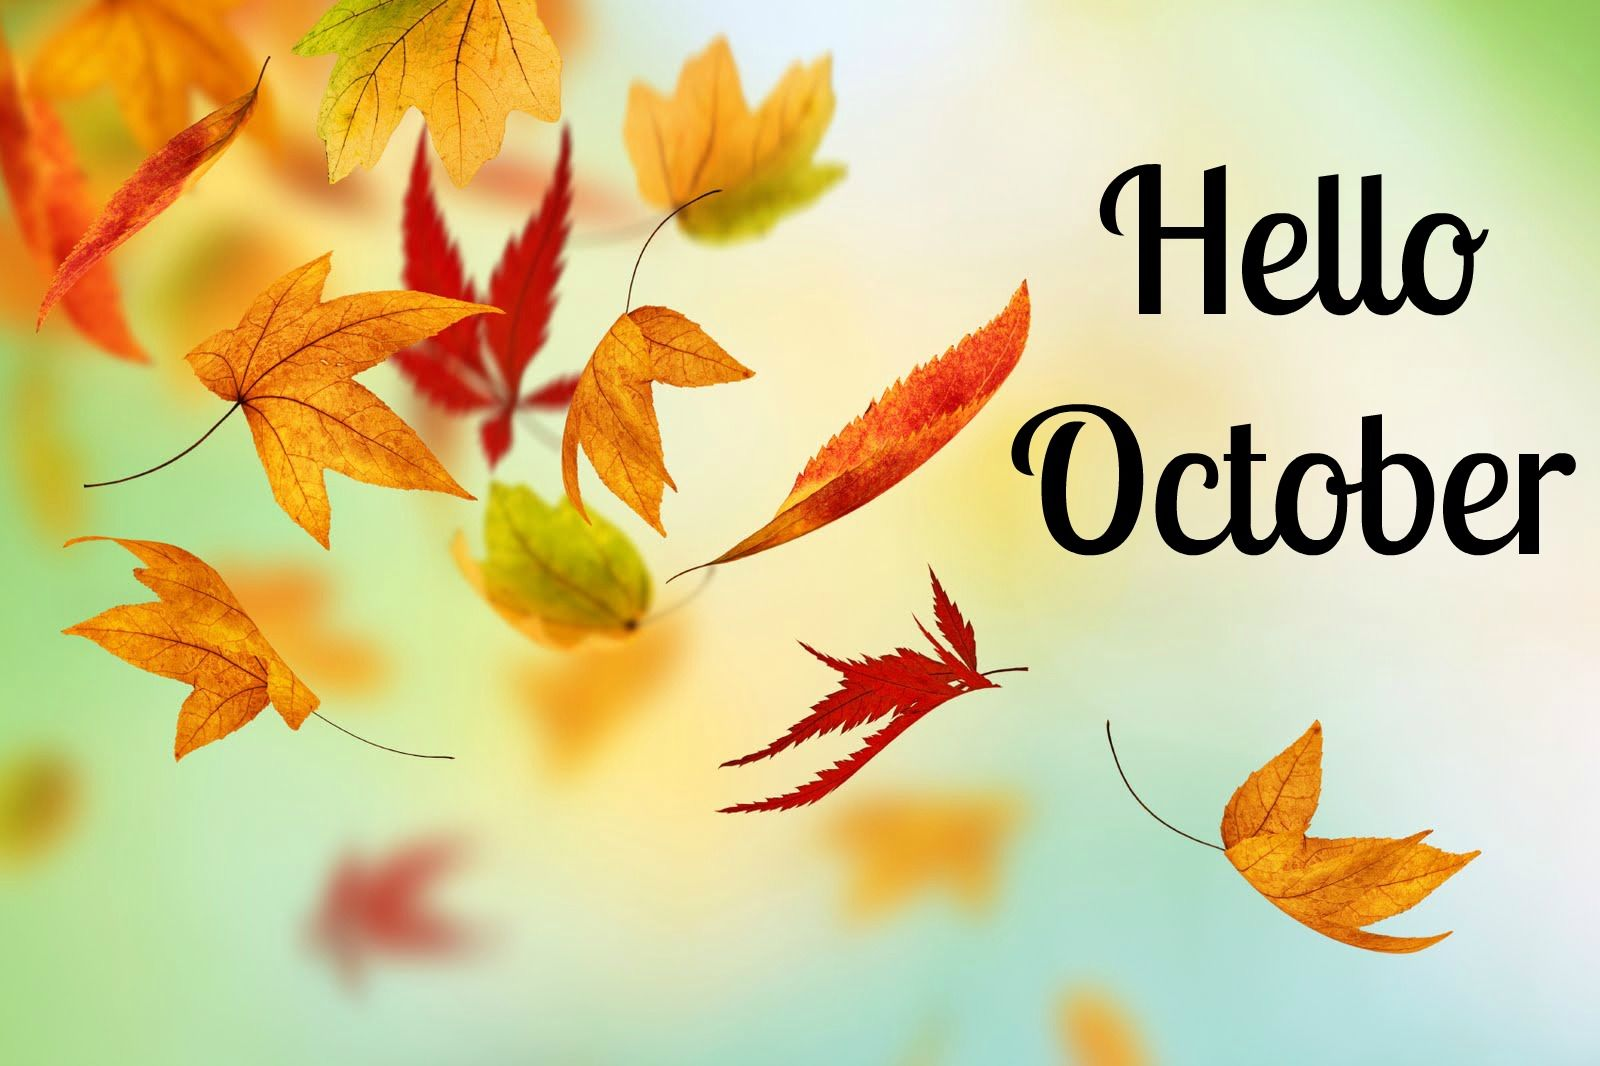 Falling Leaves Wallpaper For Iphone Hello October Quote With Falling Autumn Leaves Pictures